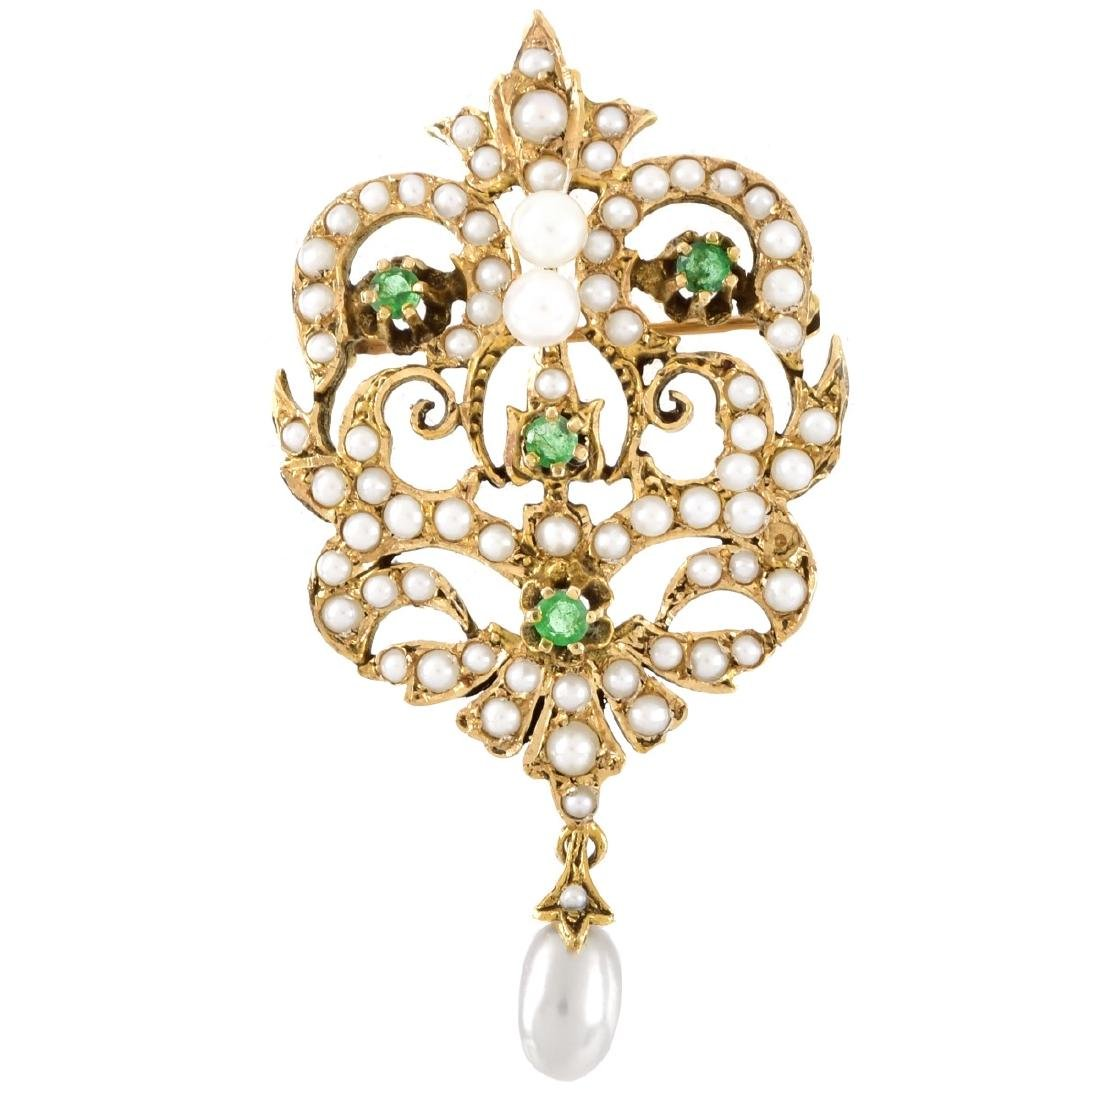 Vintage 14K Gold, Pearl and Emerald Brooch